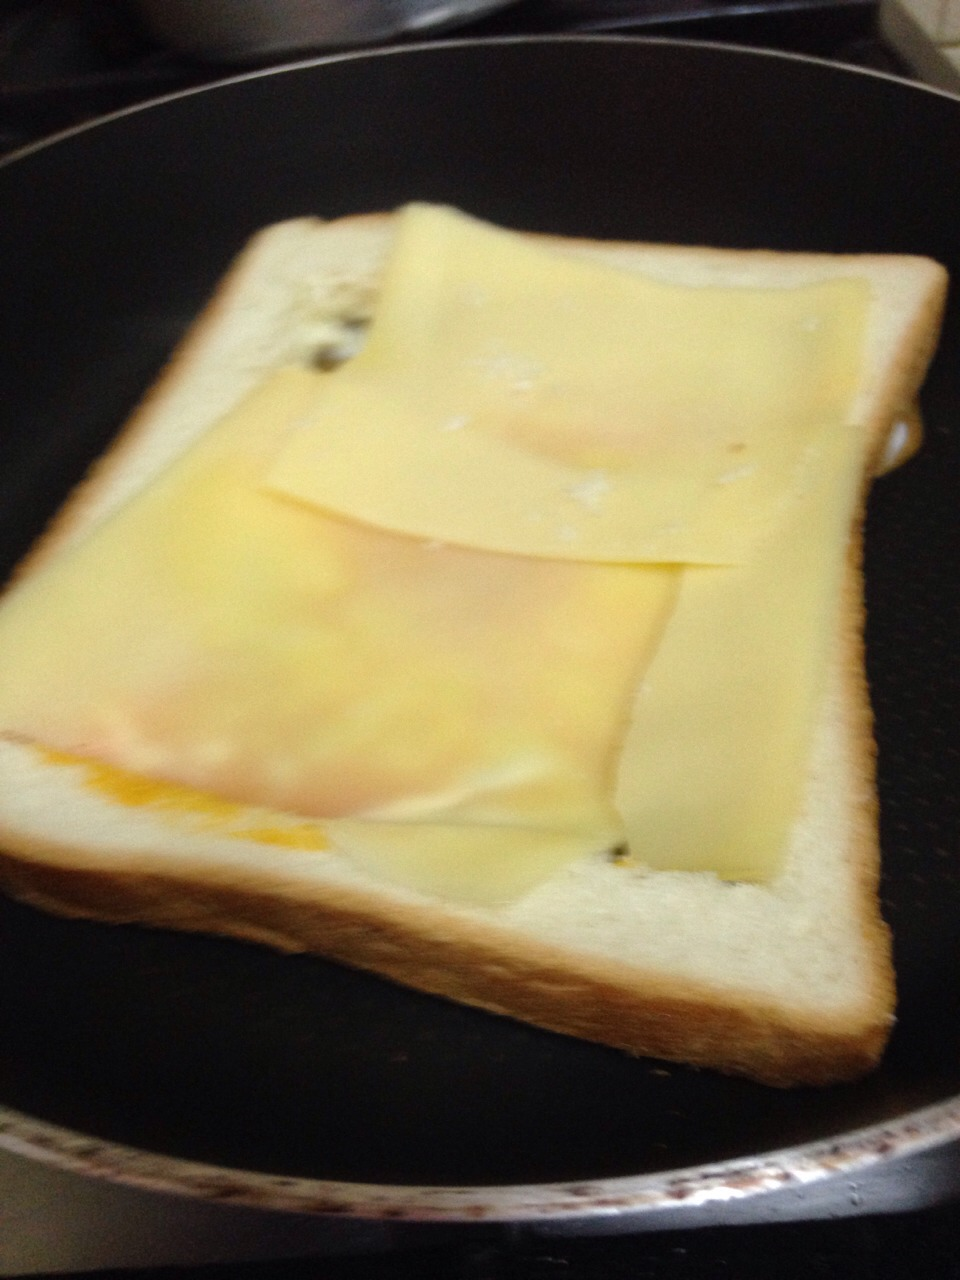 Add a slice or two of cheese to cover the eggs